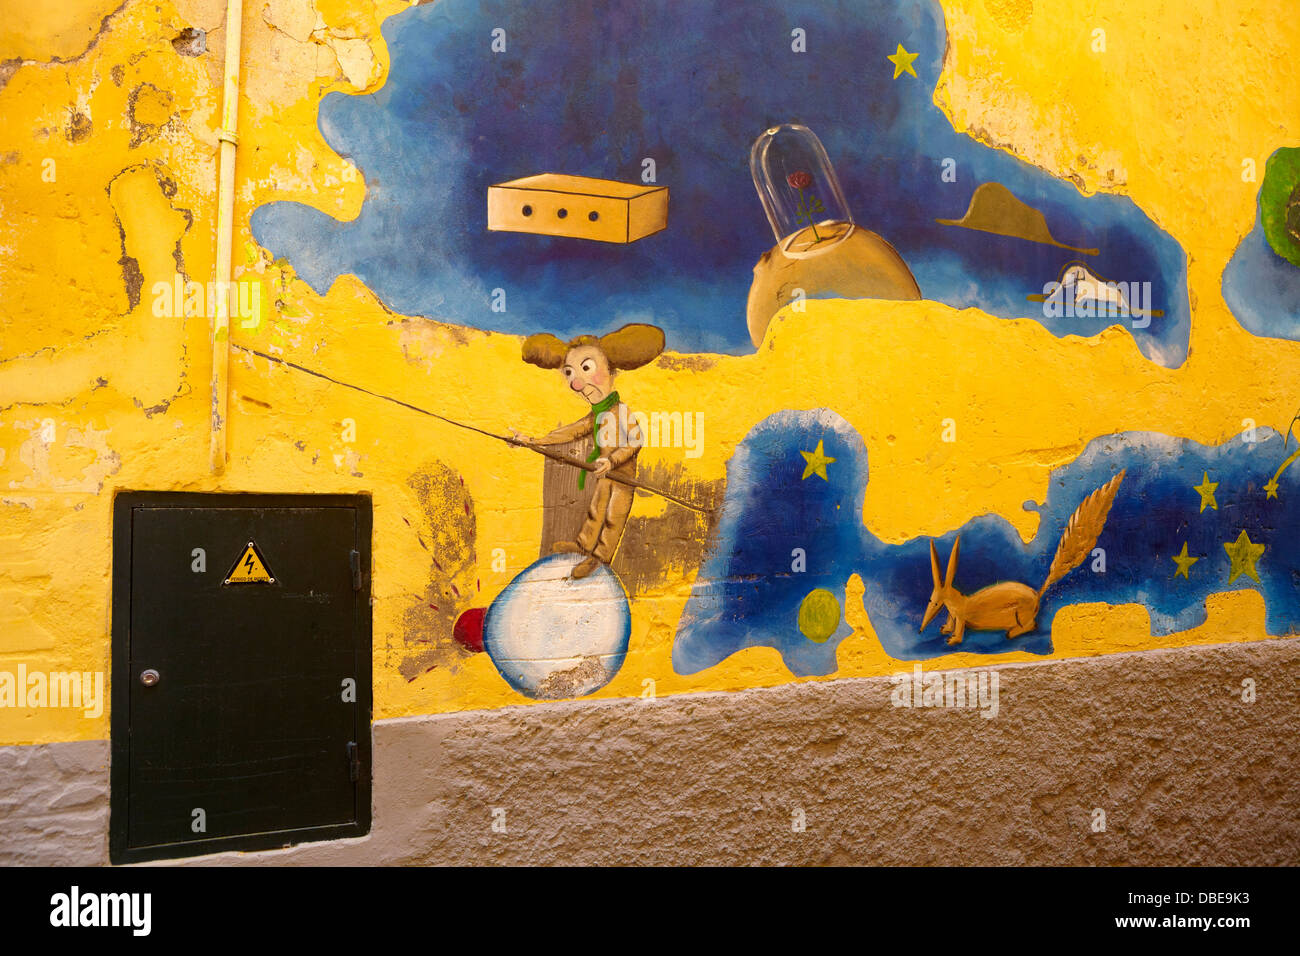 Funchal Old Town (Zona Velha), painted wall by local artist, Madeira Island, Portugal - Stock Image